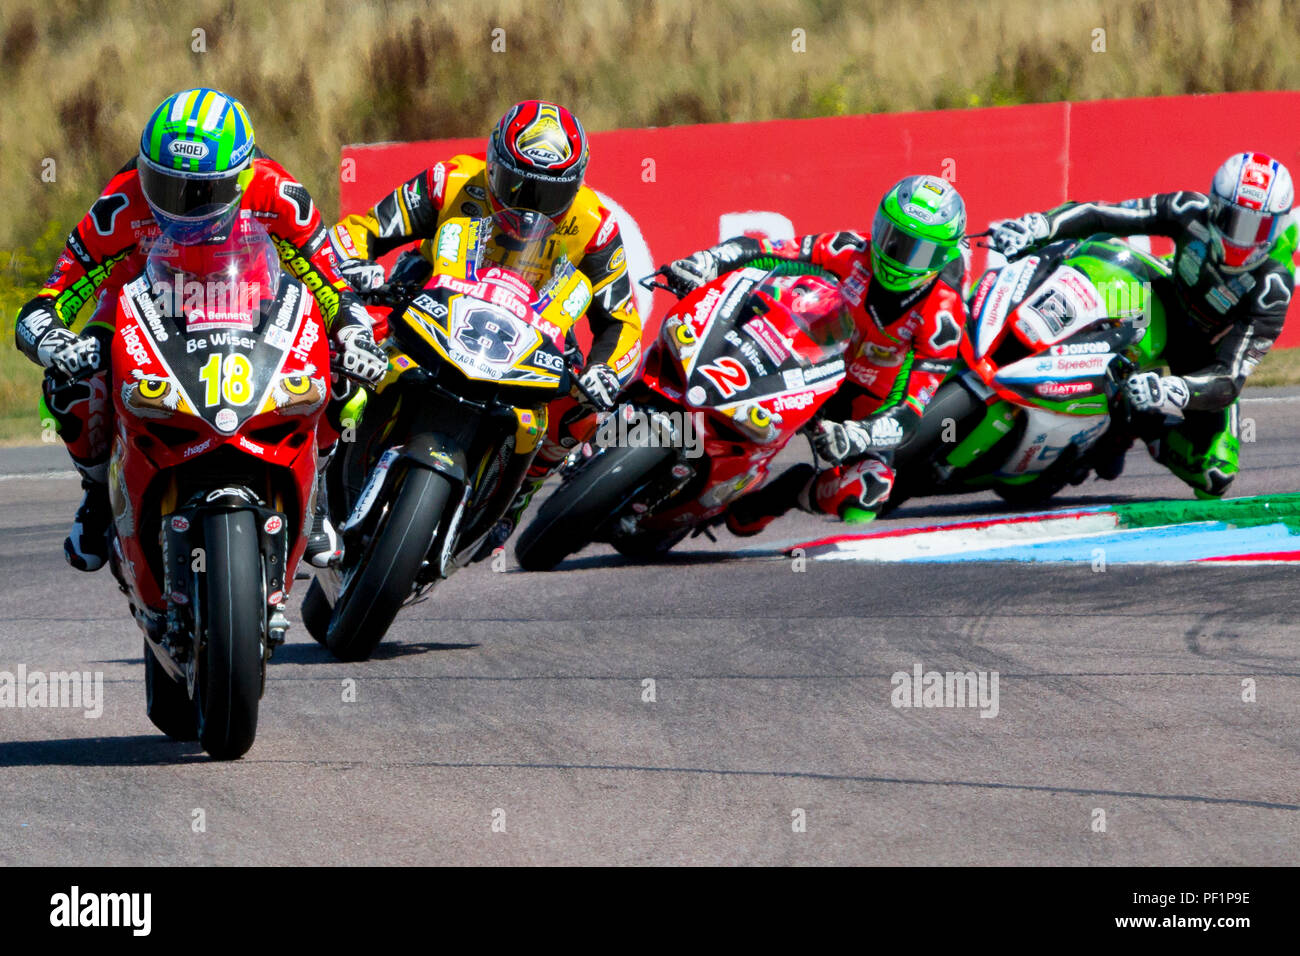 Andrew Irwin. Be Wise. Ducati. Shaun Winfield. Anvil Hire. TAG Yamaha. Glen Irwin. Be Wiser. Ducati. Luke Mossey. JG Speedfit Kawasaki.Bennetts, British Super Bike, Thruxton, Hampshire, UK,  2018. - Stock Image